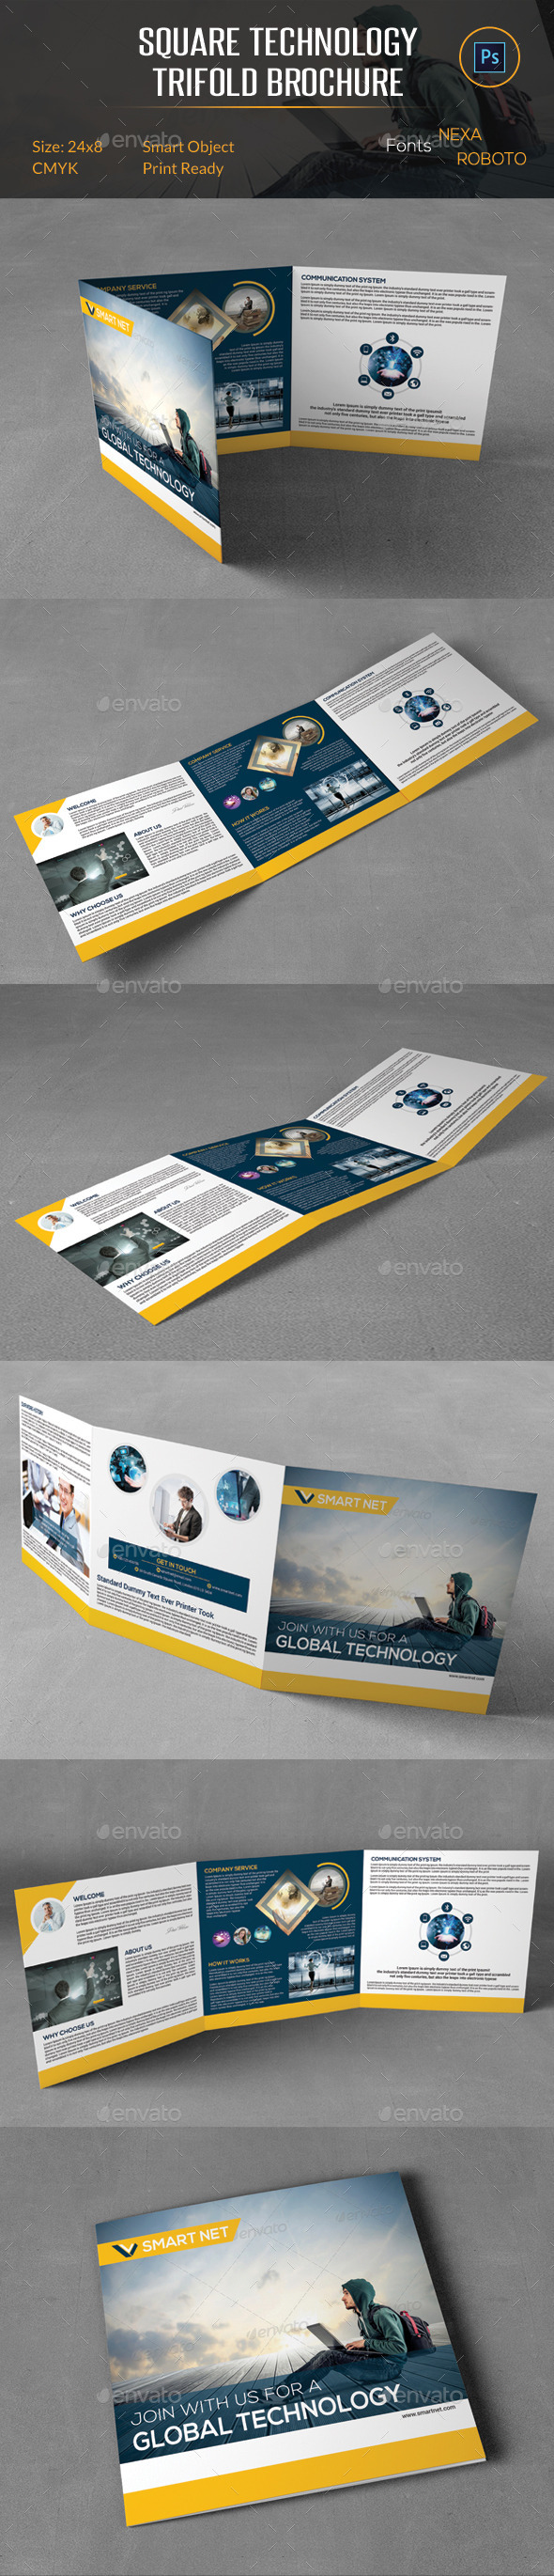 Square Technology Trifold Brochure - Corporate Brochures